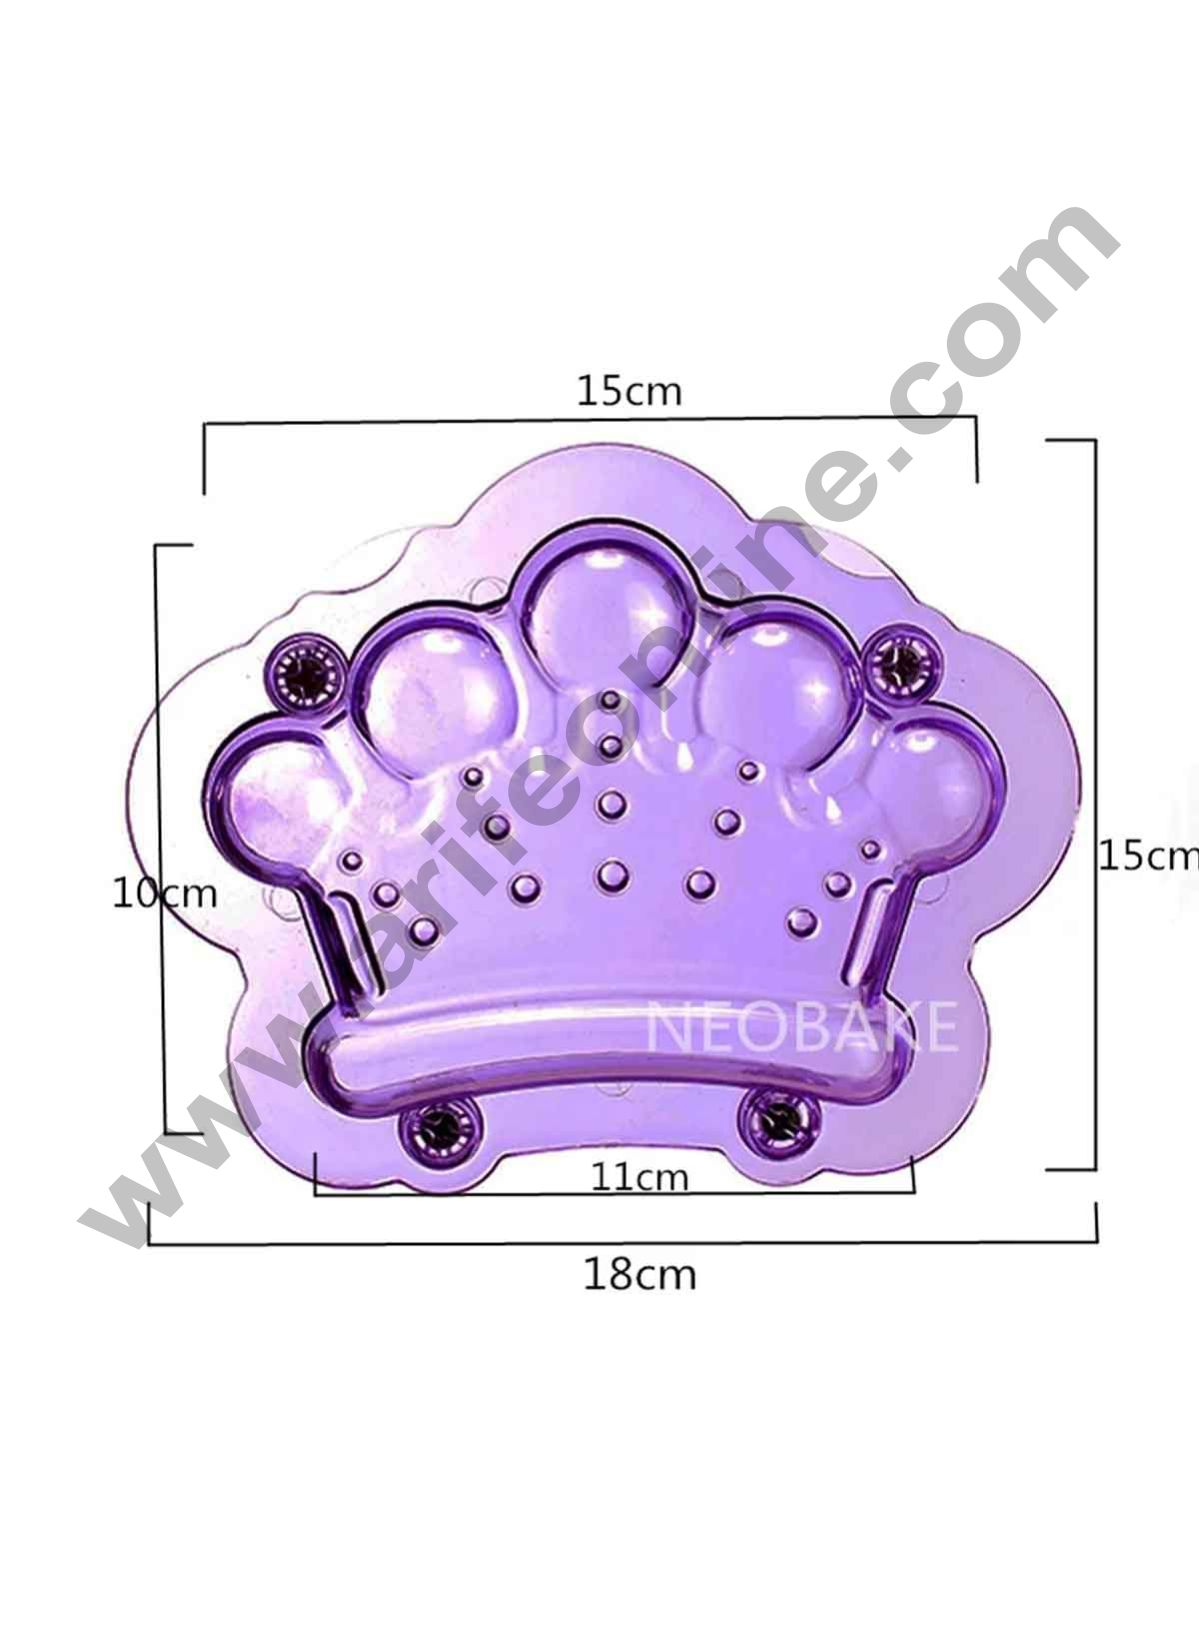 Cake Decor Polycarbonate 3D King Queen Crown Chocolate Mold Cake Decorating Chocolate Mould Tools